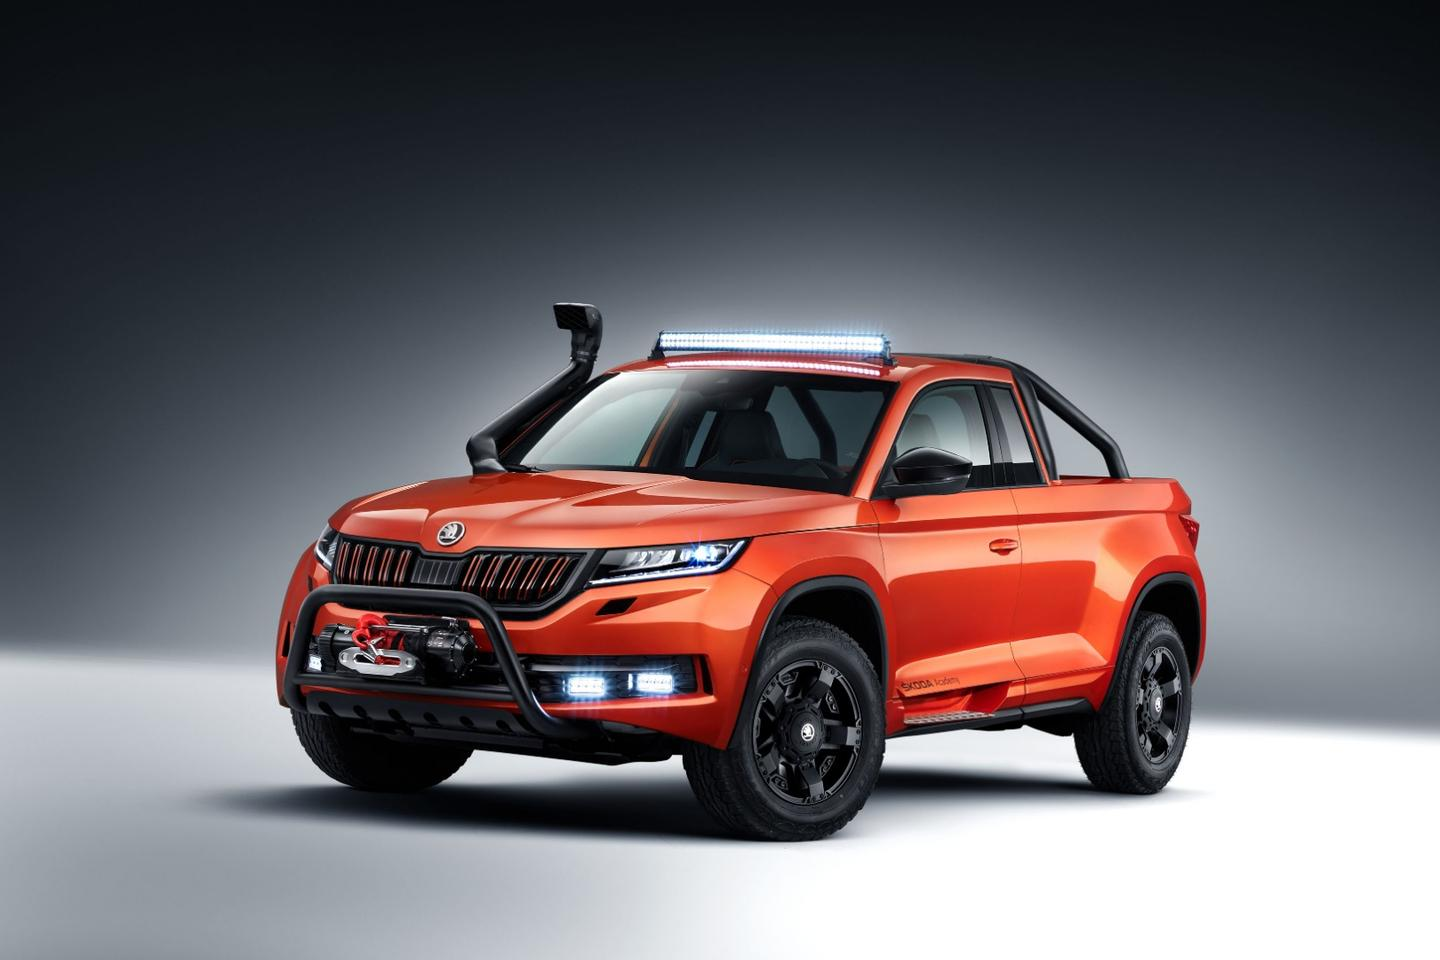 The concept's name, Mountiaq, is meant to convey a spirit of adventure and off-road capability